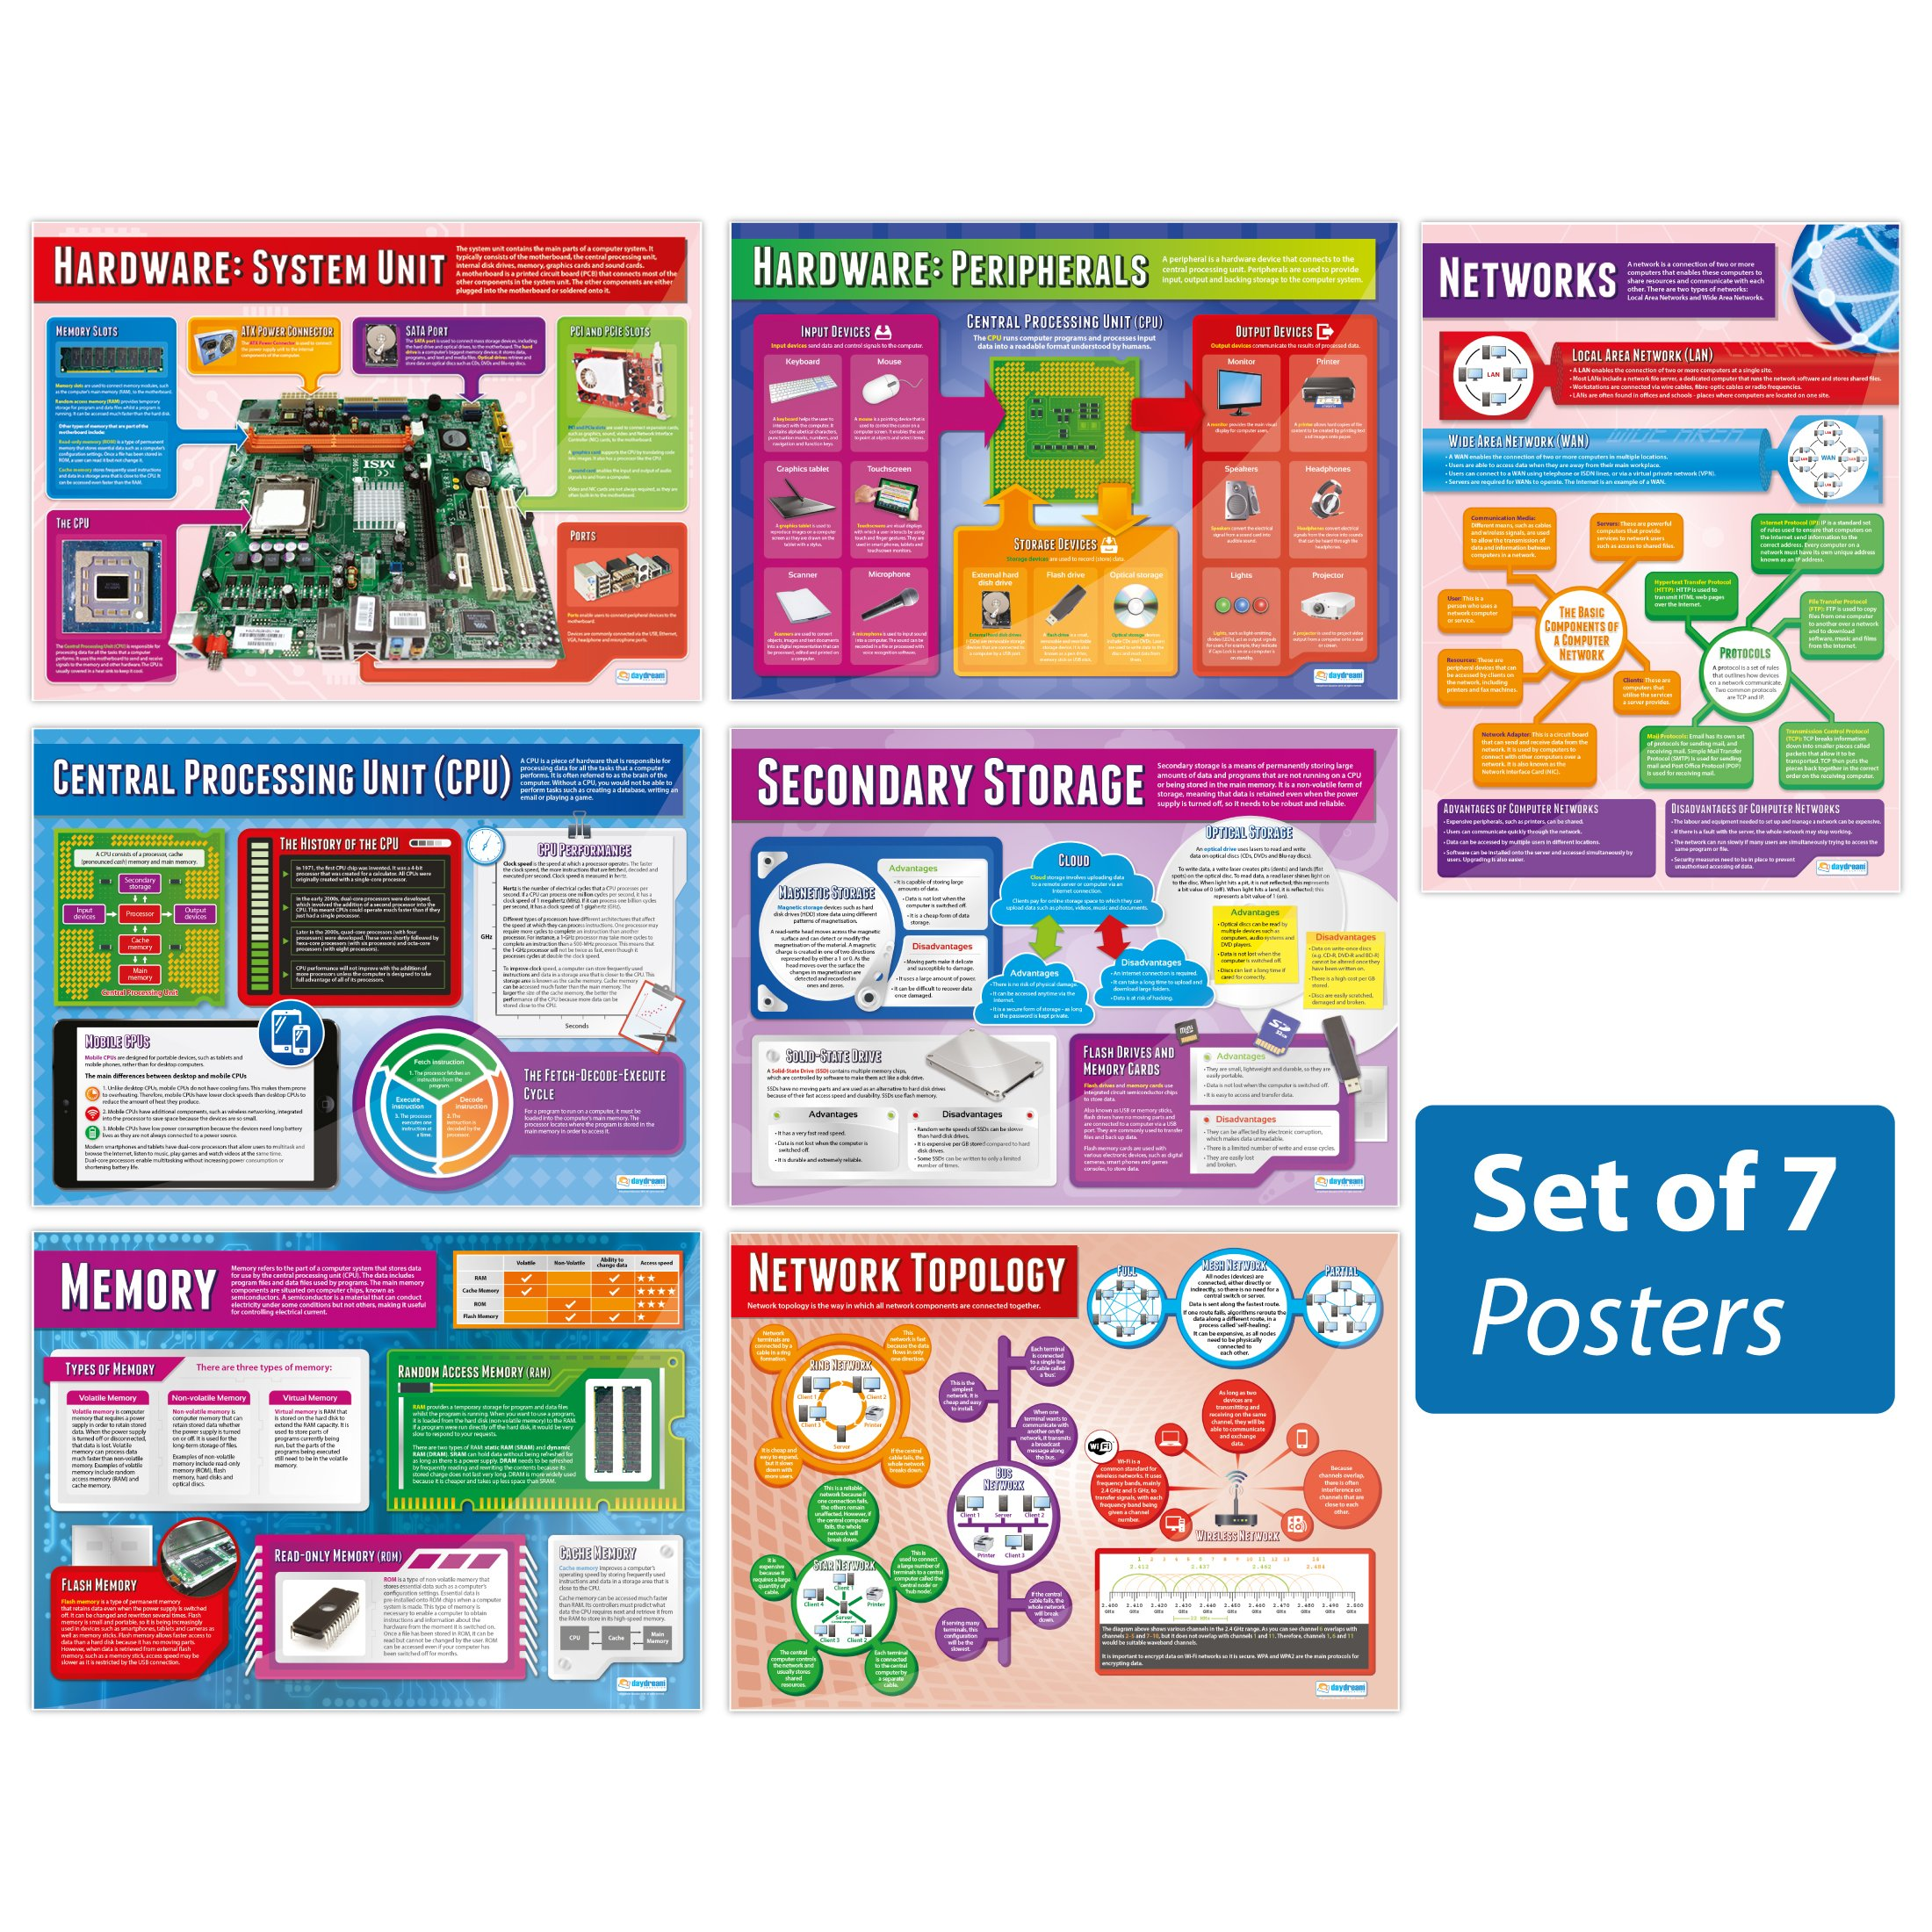 Computer Systems and Networks Posters - Set of 7   Computer Science Posters   Gloss Paper Measuring 33'' x 23.5''   STEM Posters for The Classroom   Education Charts by Daydream Education by Daydream Education